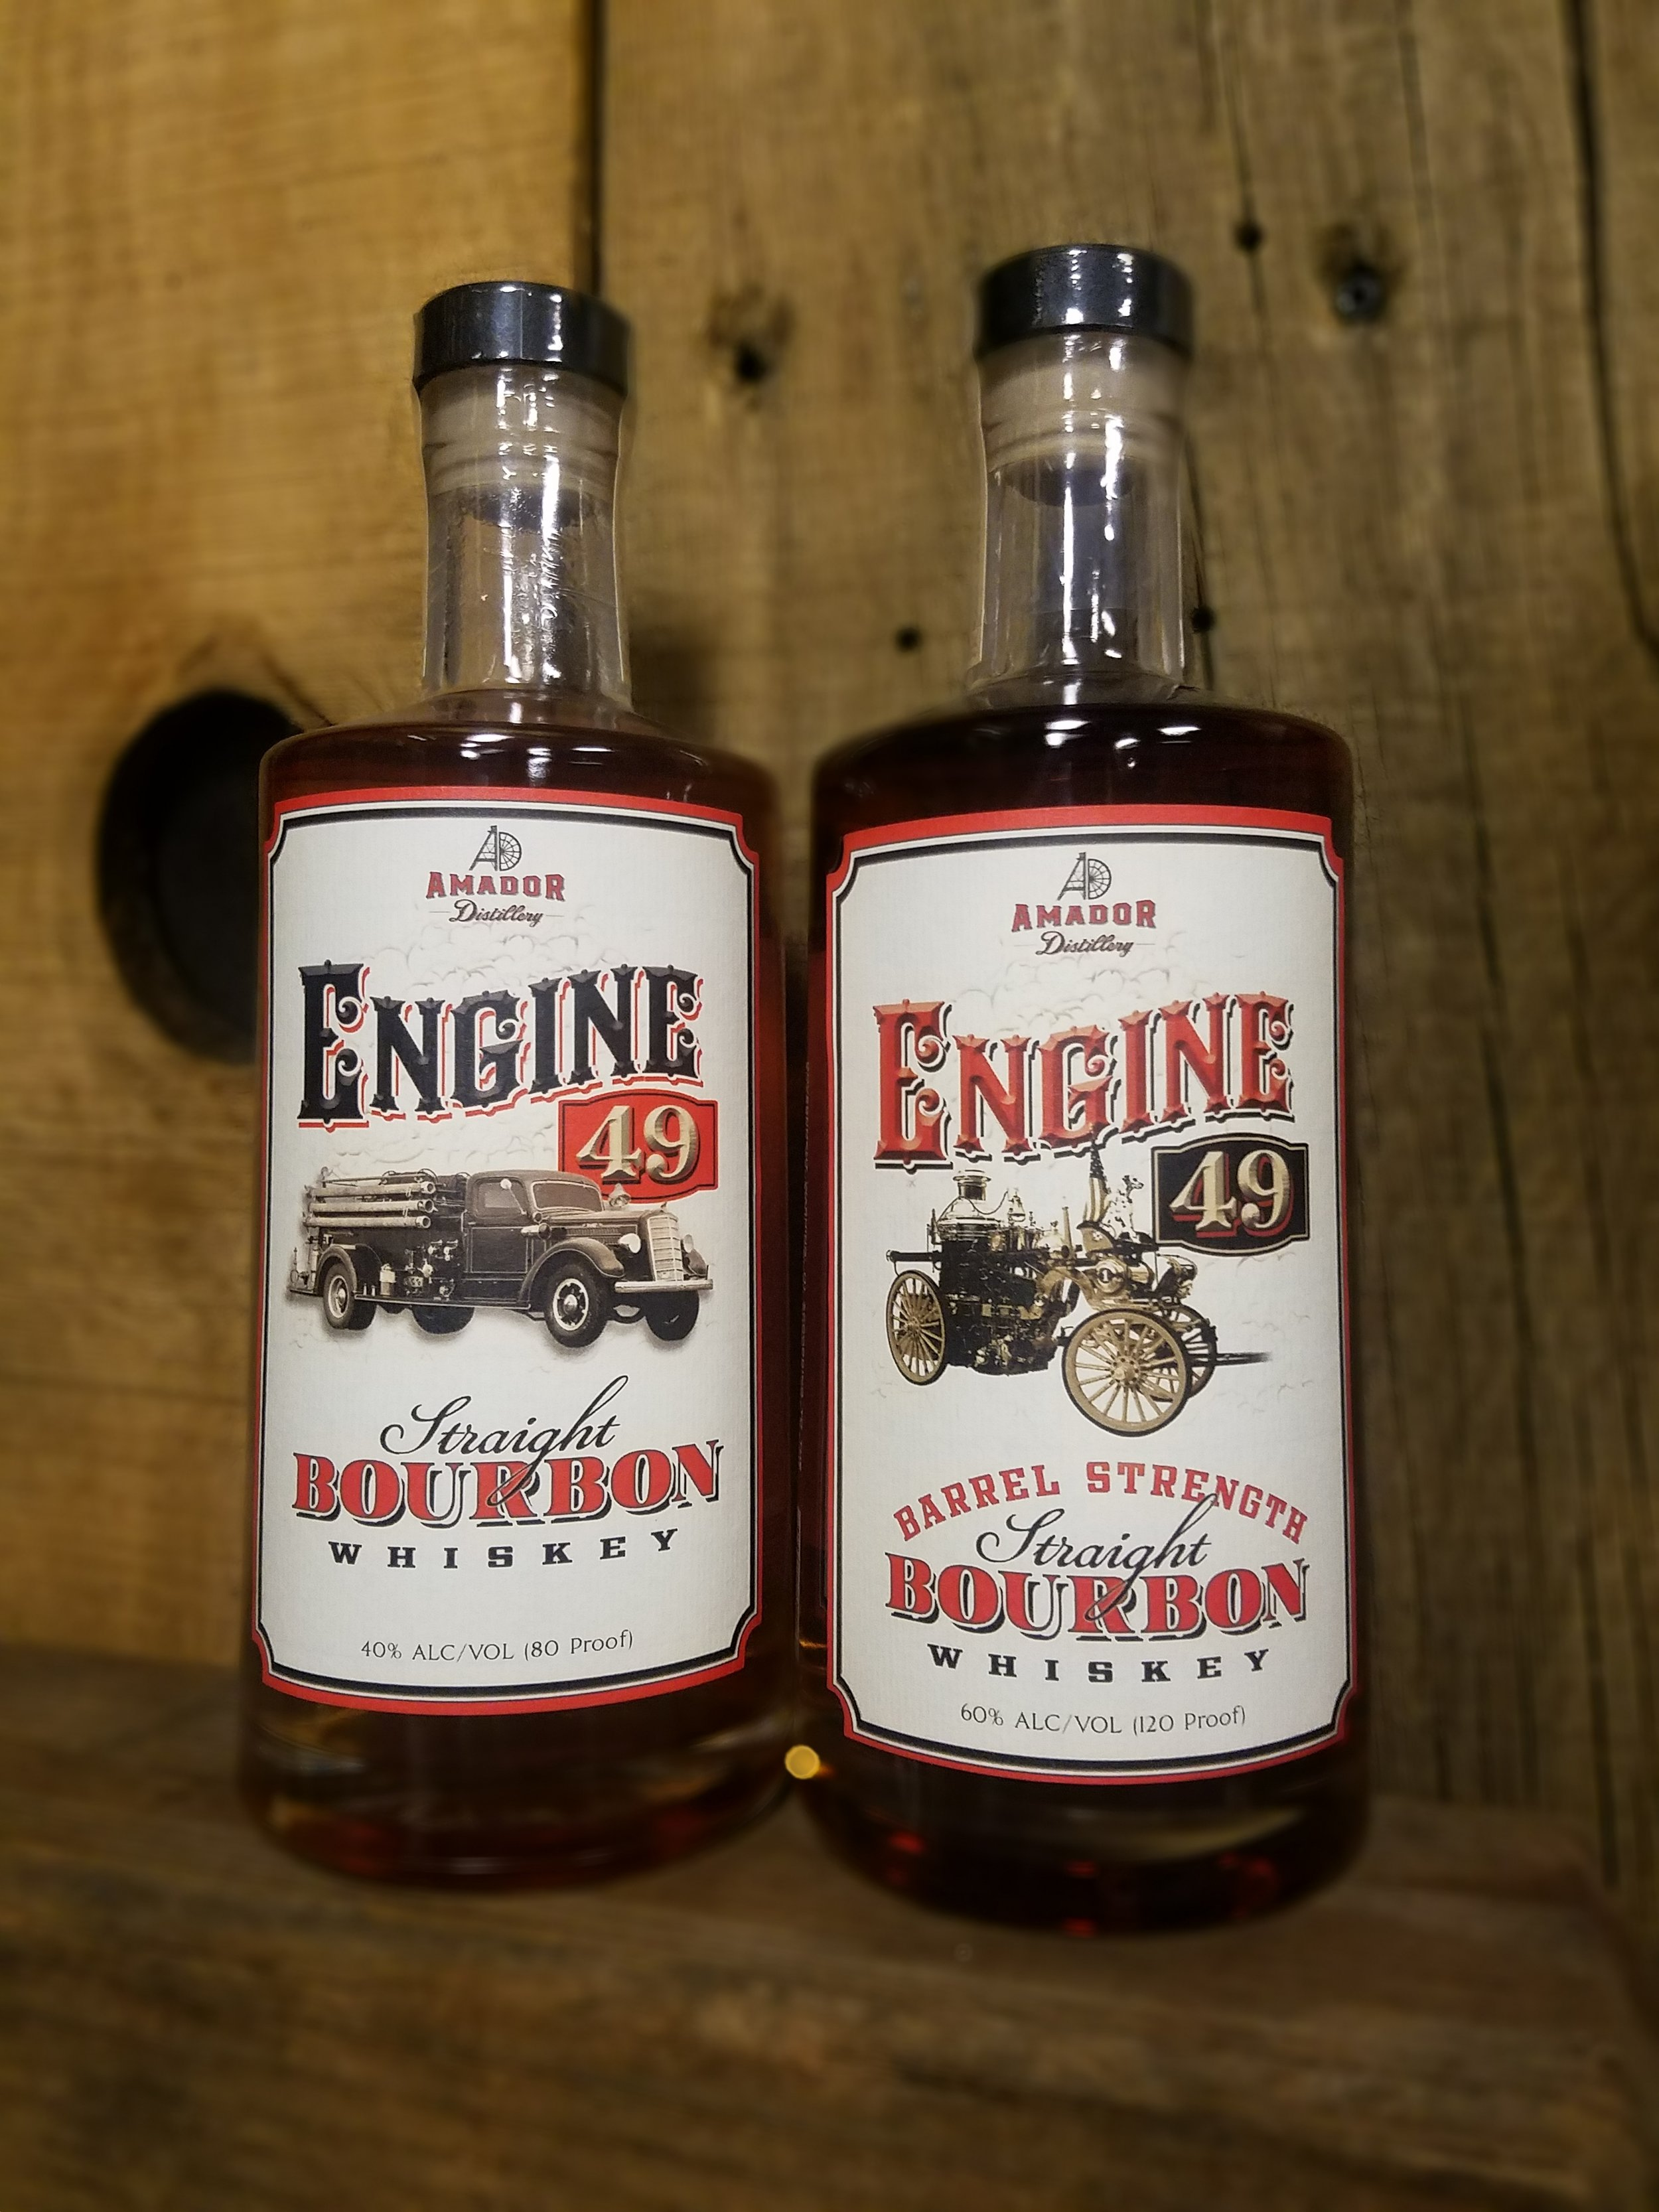 Engine 49 Straight Bourbon Whiskey - The Engine 49 80 proof Bourbon is a wonderful bottle for both beginner and advanced spirits consumers. The heat and lack of humidity give a very smooth and deep flavor without the typical burn or thin flavor many young bourbons acquire. We keep all our barrels in a warehouse environment that promotes the barrels pulling the spirit into the staves. This gives a very smooth and easy to drink bourbon, that also provides a deep flavor profile. The mash bill is 75% corn and 24% rye with 1% set aside for malted barley to help fermentation. This gives us a unique style that many can enjoy.The Barrel Strength Engine 49 Bourbon is 120 proof for consistency. The barrels mirror the 80 proof Engine 49 Bourbon, but instead of taking the spirit down to typical 80 proof we keep it close to how it ages in the barrel.80 & 120 PF